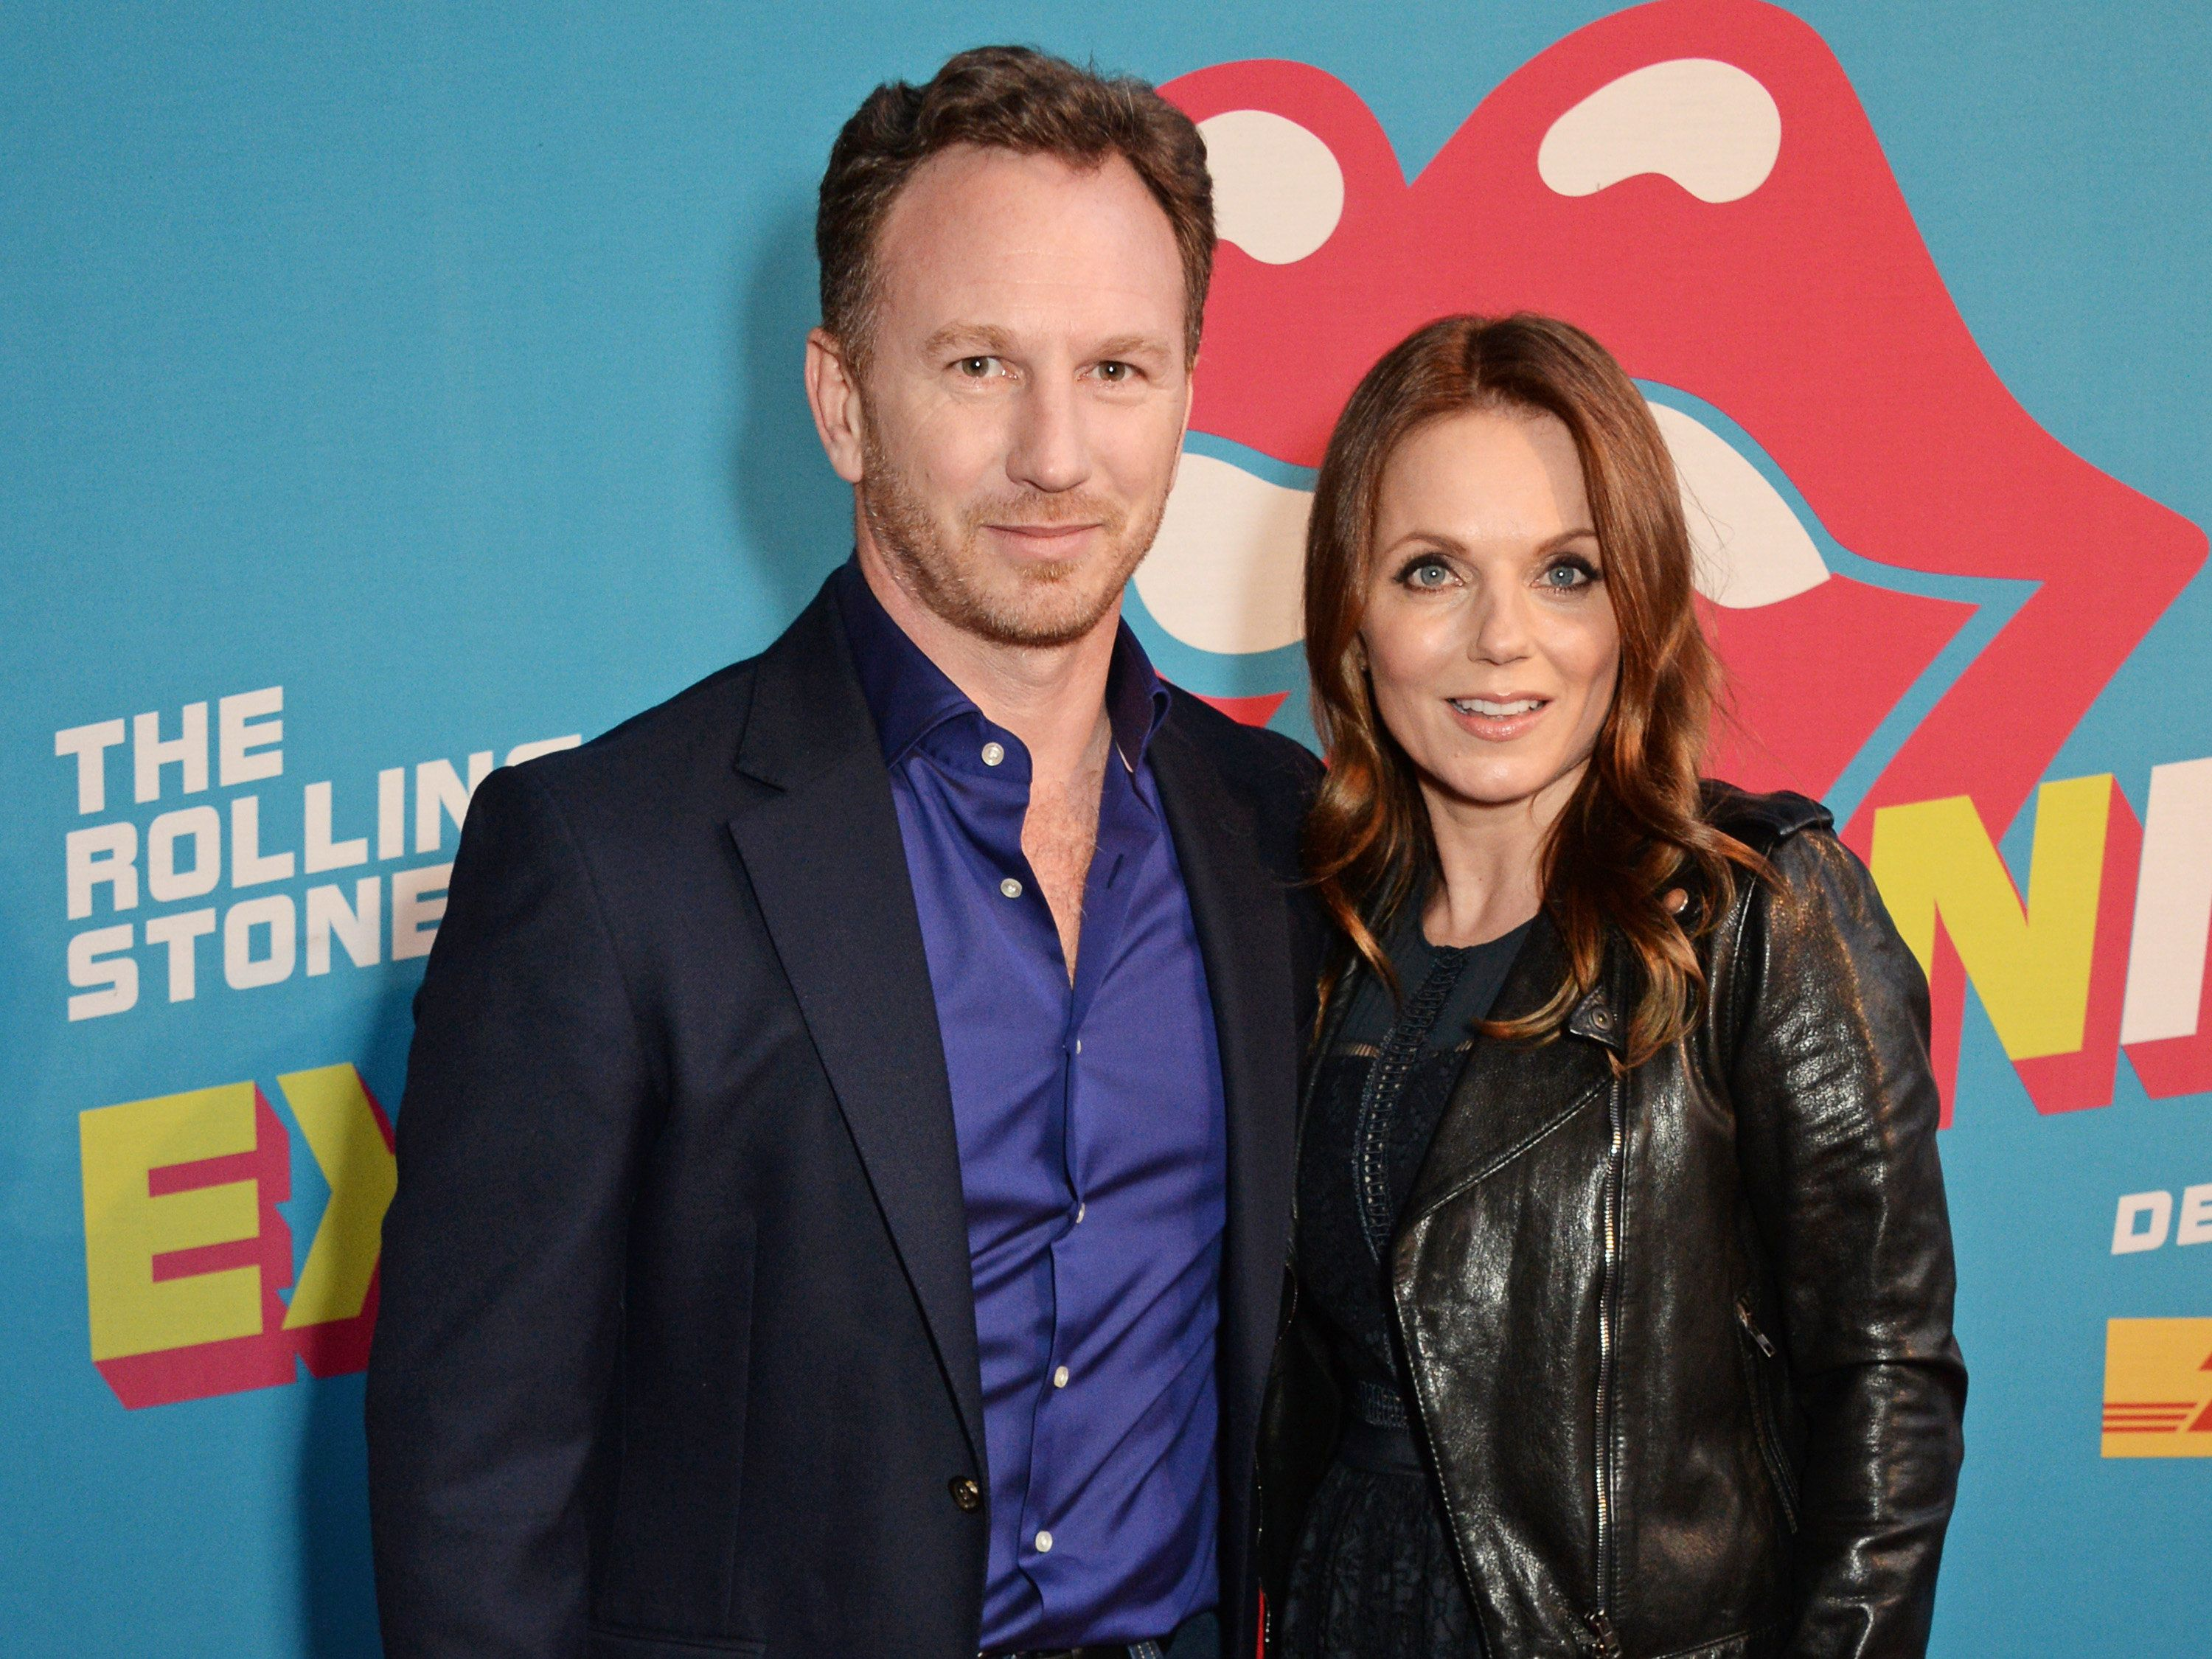 Geri Horner Is Pregnant With Her Second